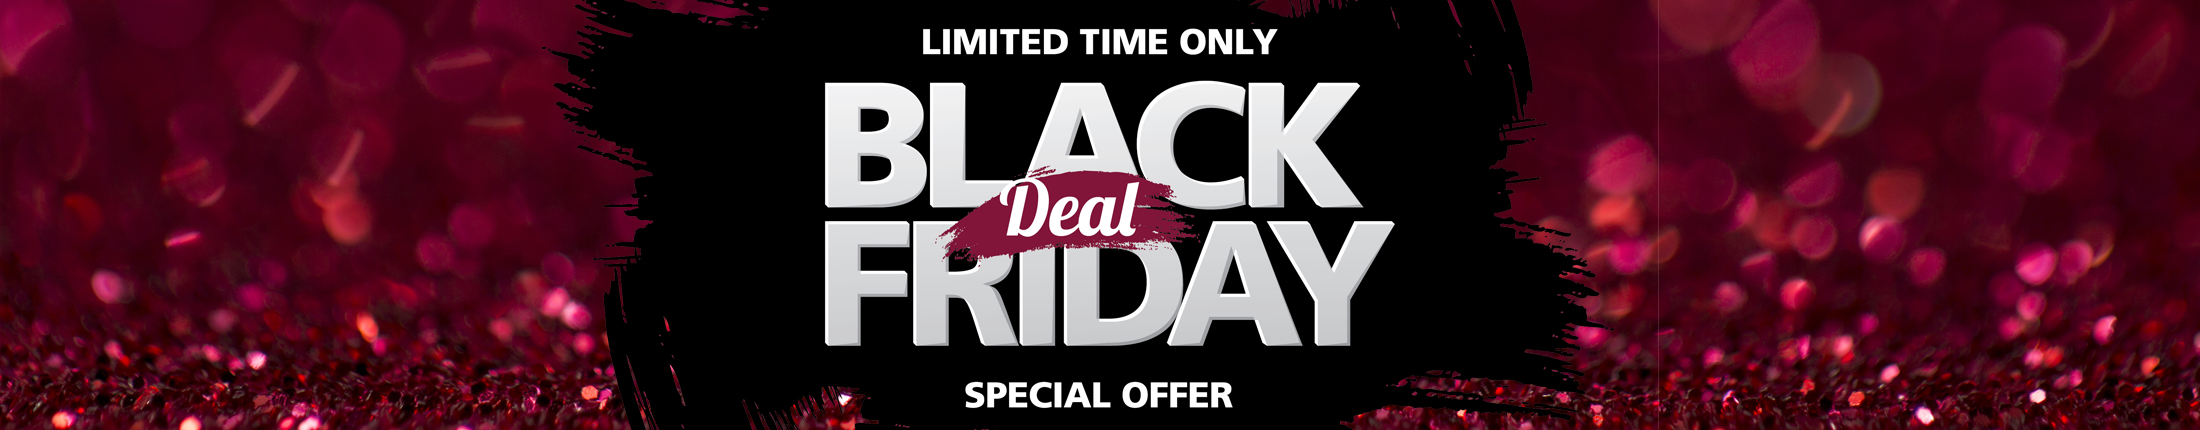 2020 Black Friday Loan Special! Discounted Rates on loans up to 50%